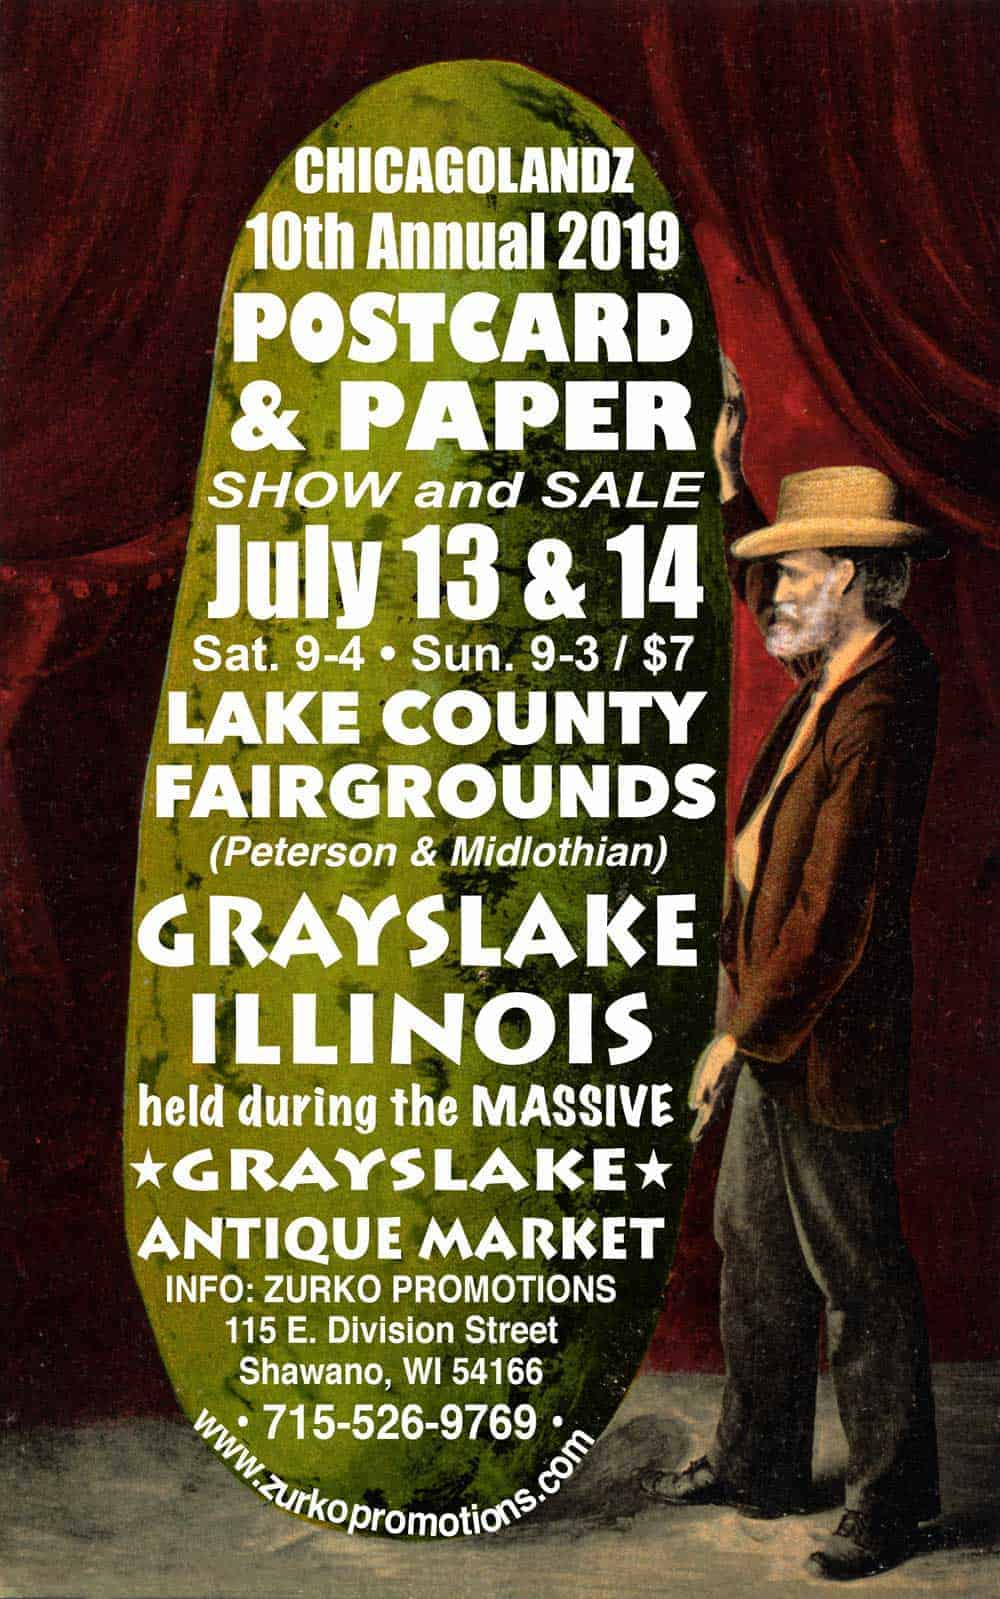 Chicago Grayslake Illinois Antique Vintage Market Postcard and Paper Show